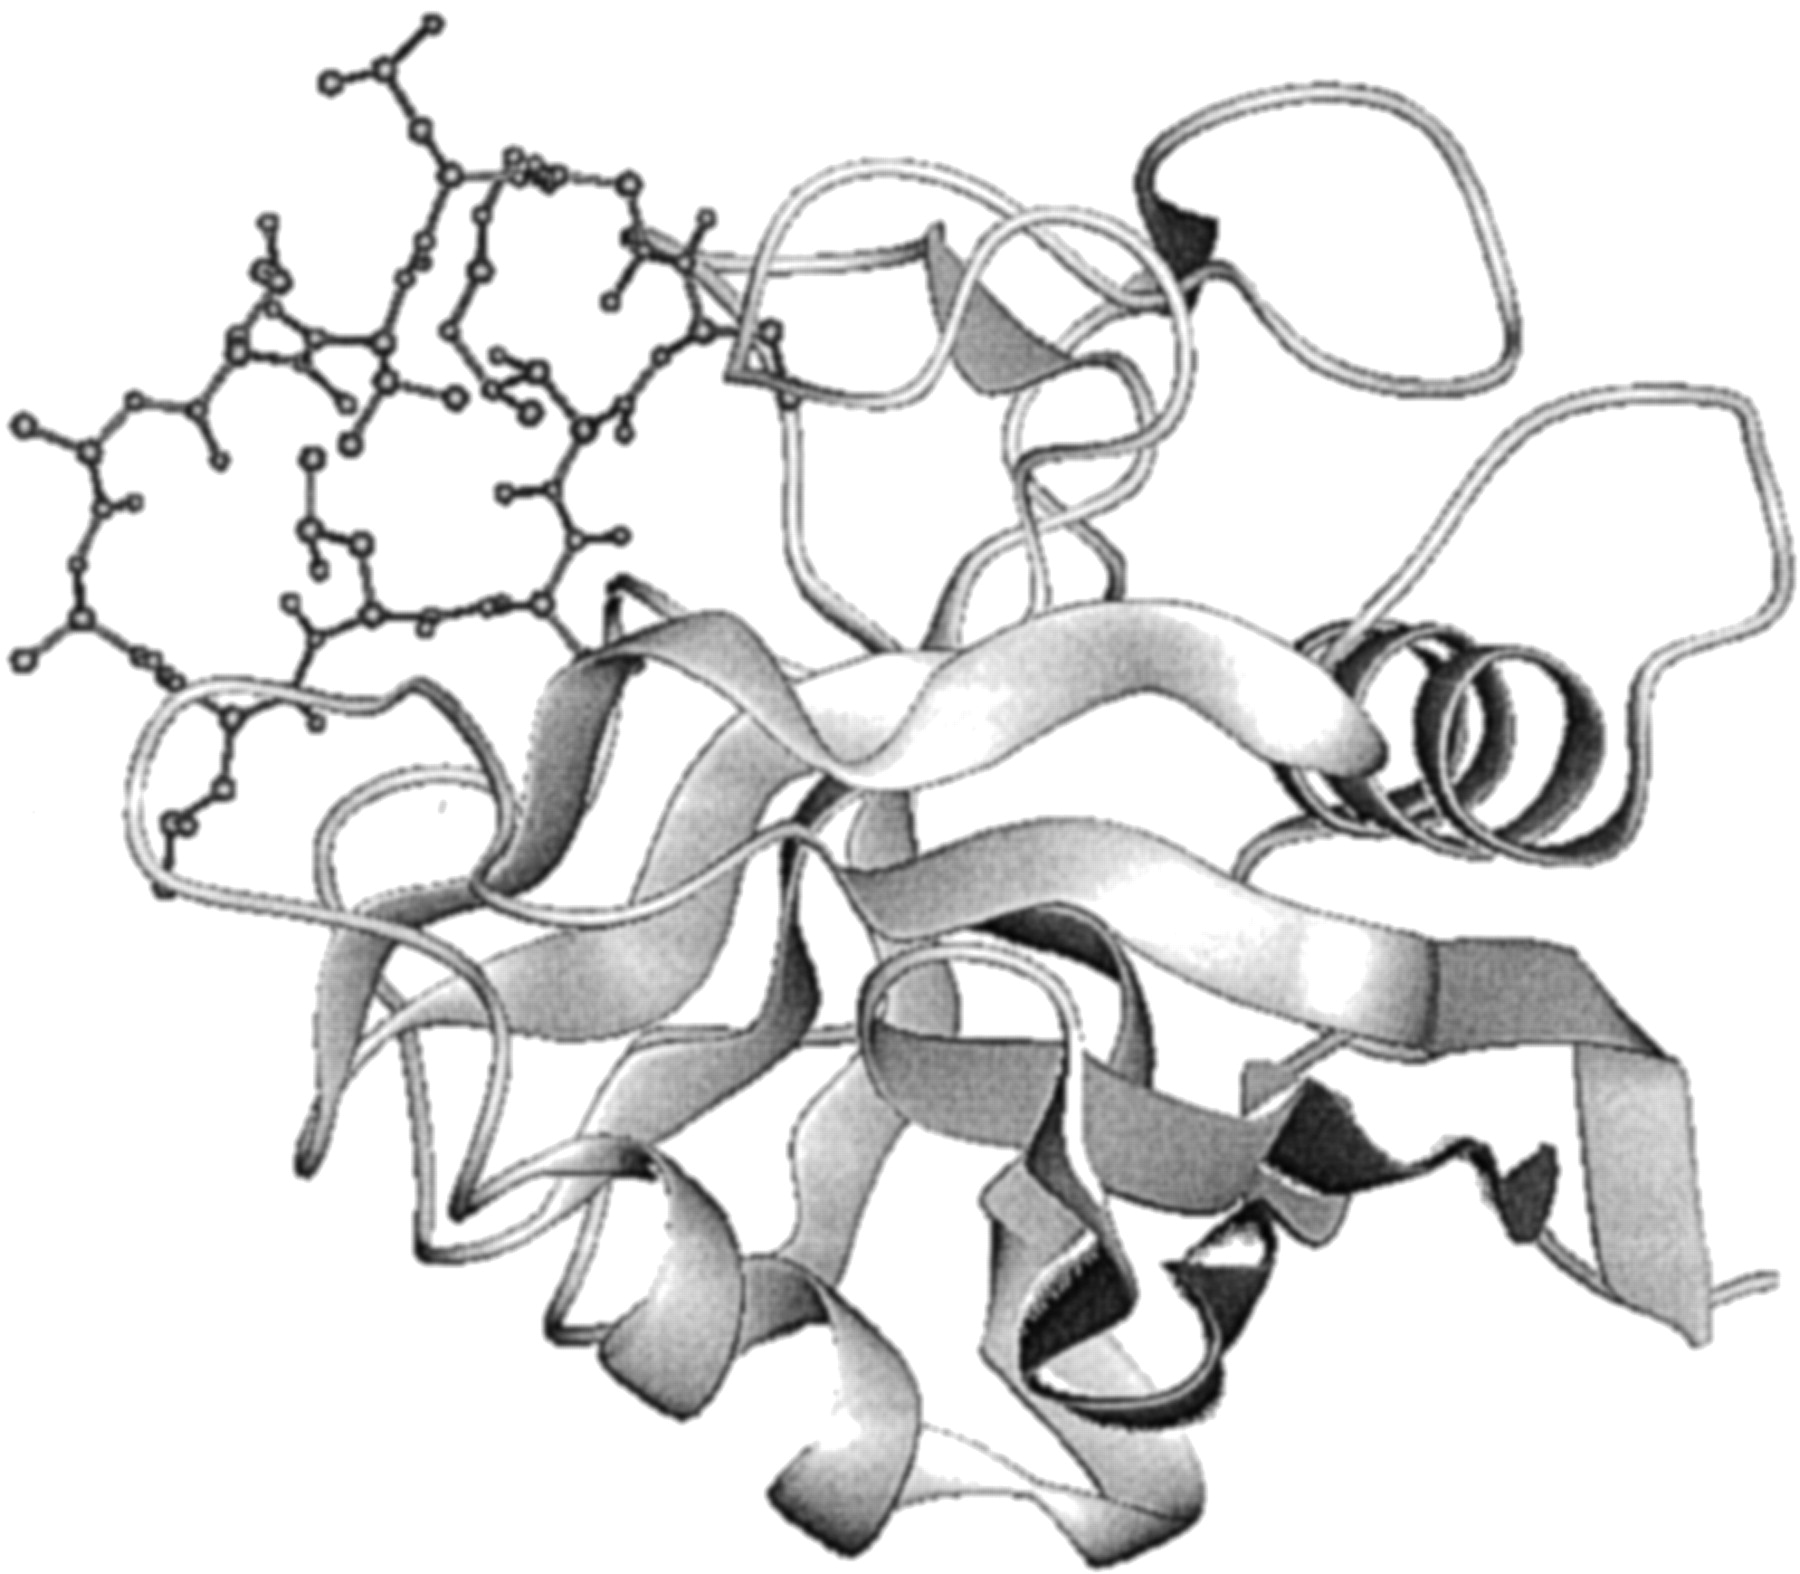 Ligand-Binding Proteins: Their Potential for Application in